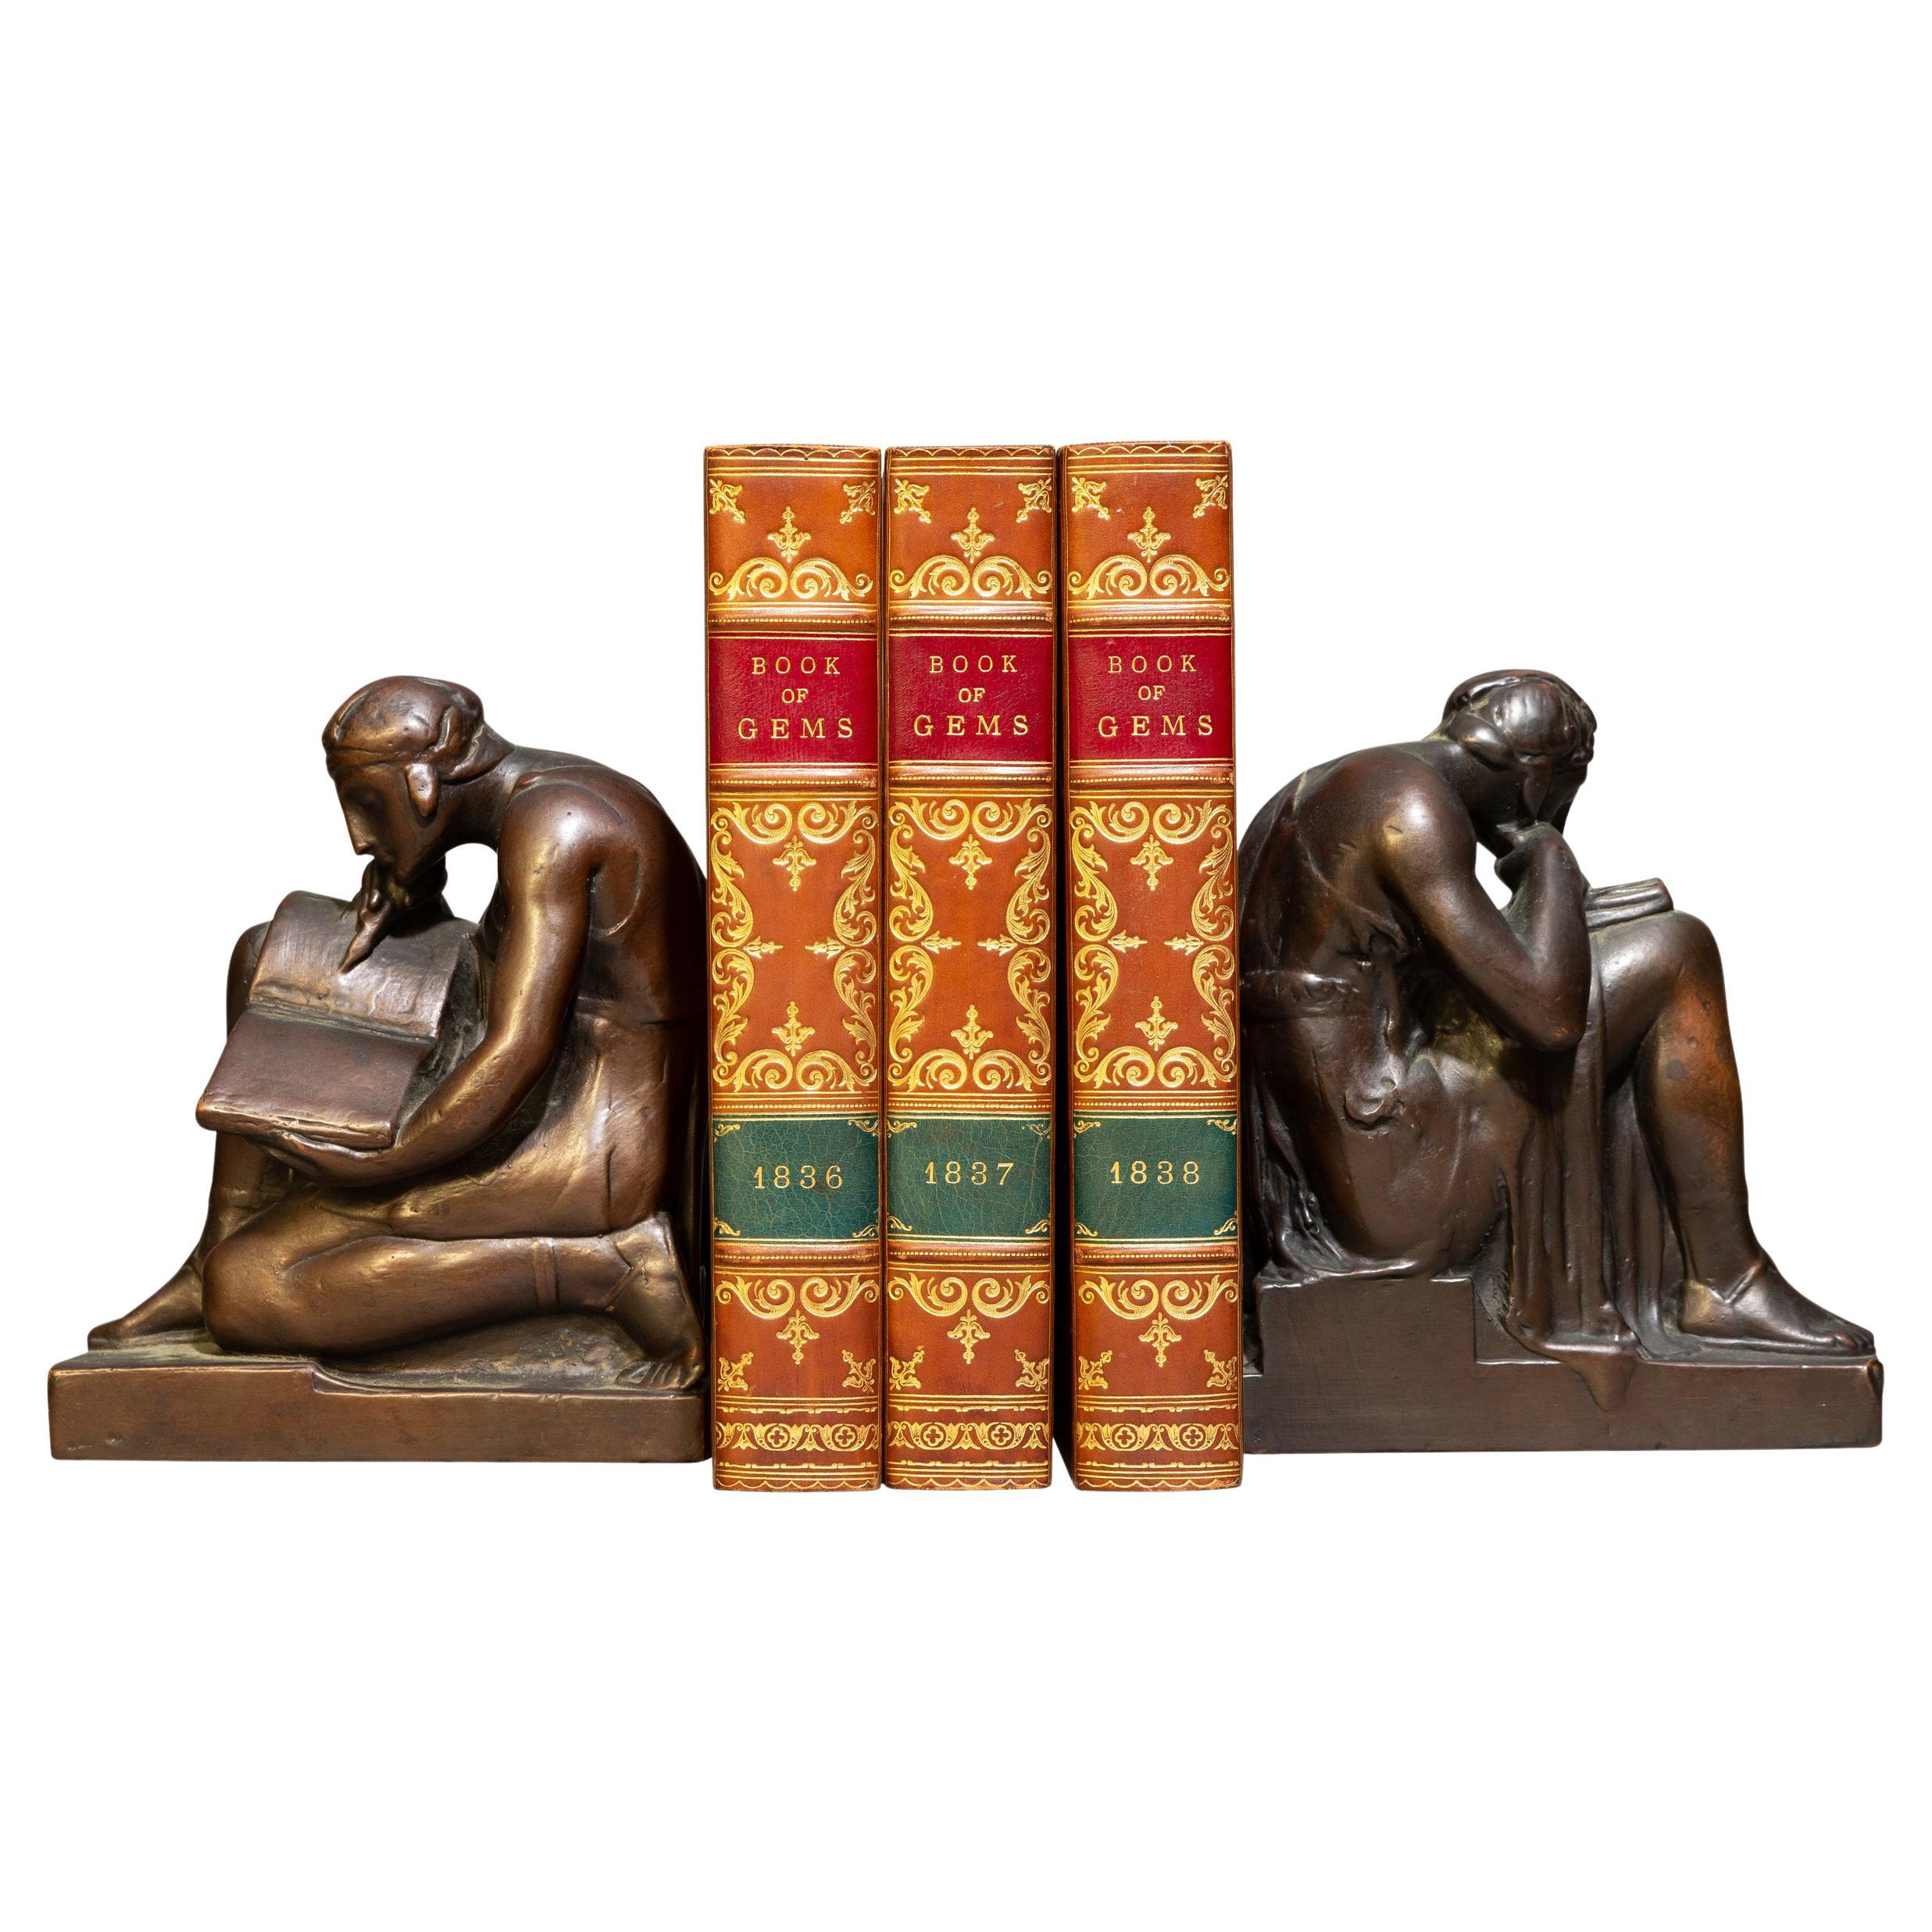 'Book Sets' 3 Volumes, S. C. Hall, The Book of Gems